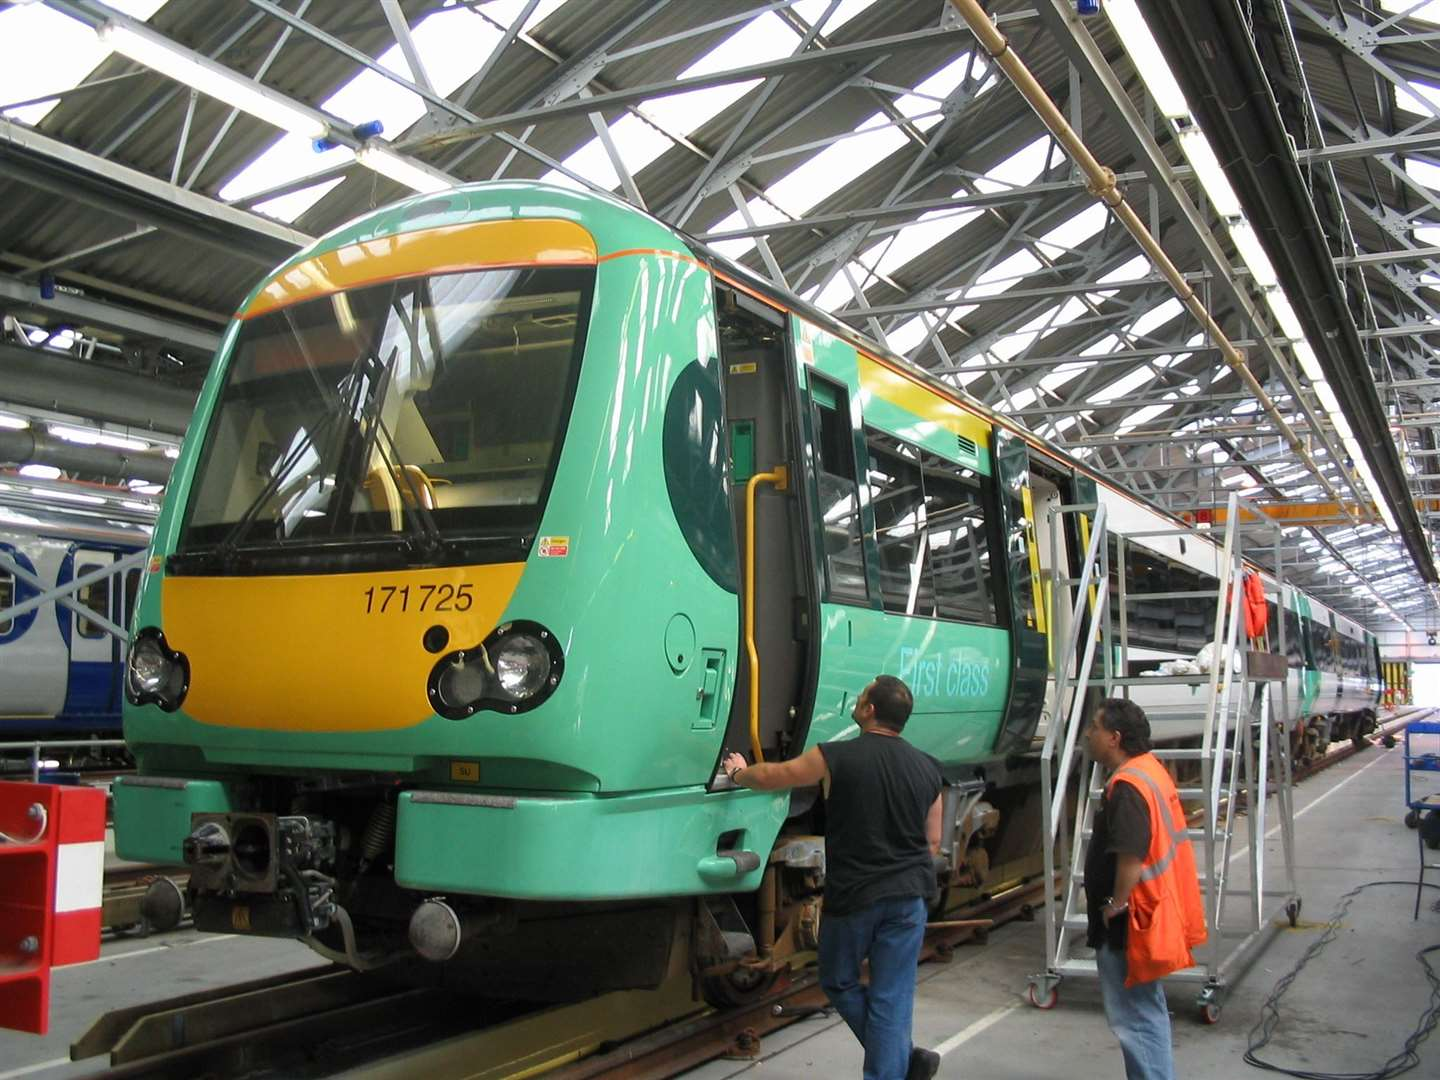 Southern railways is part of the Go-Ahead Group